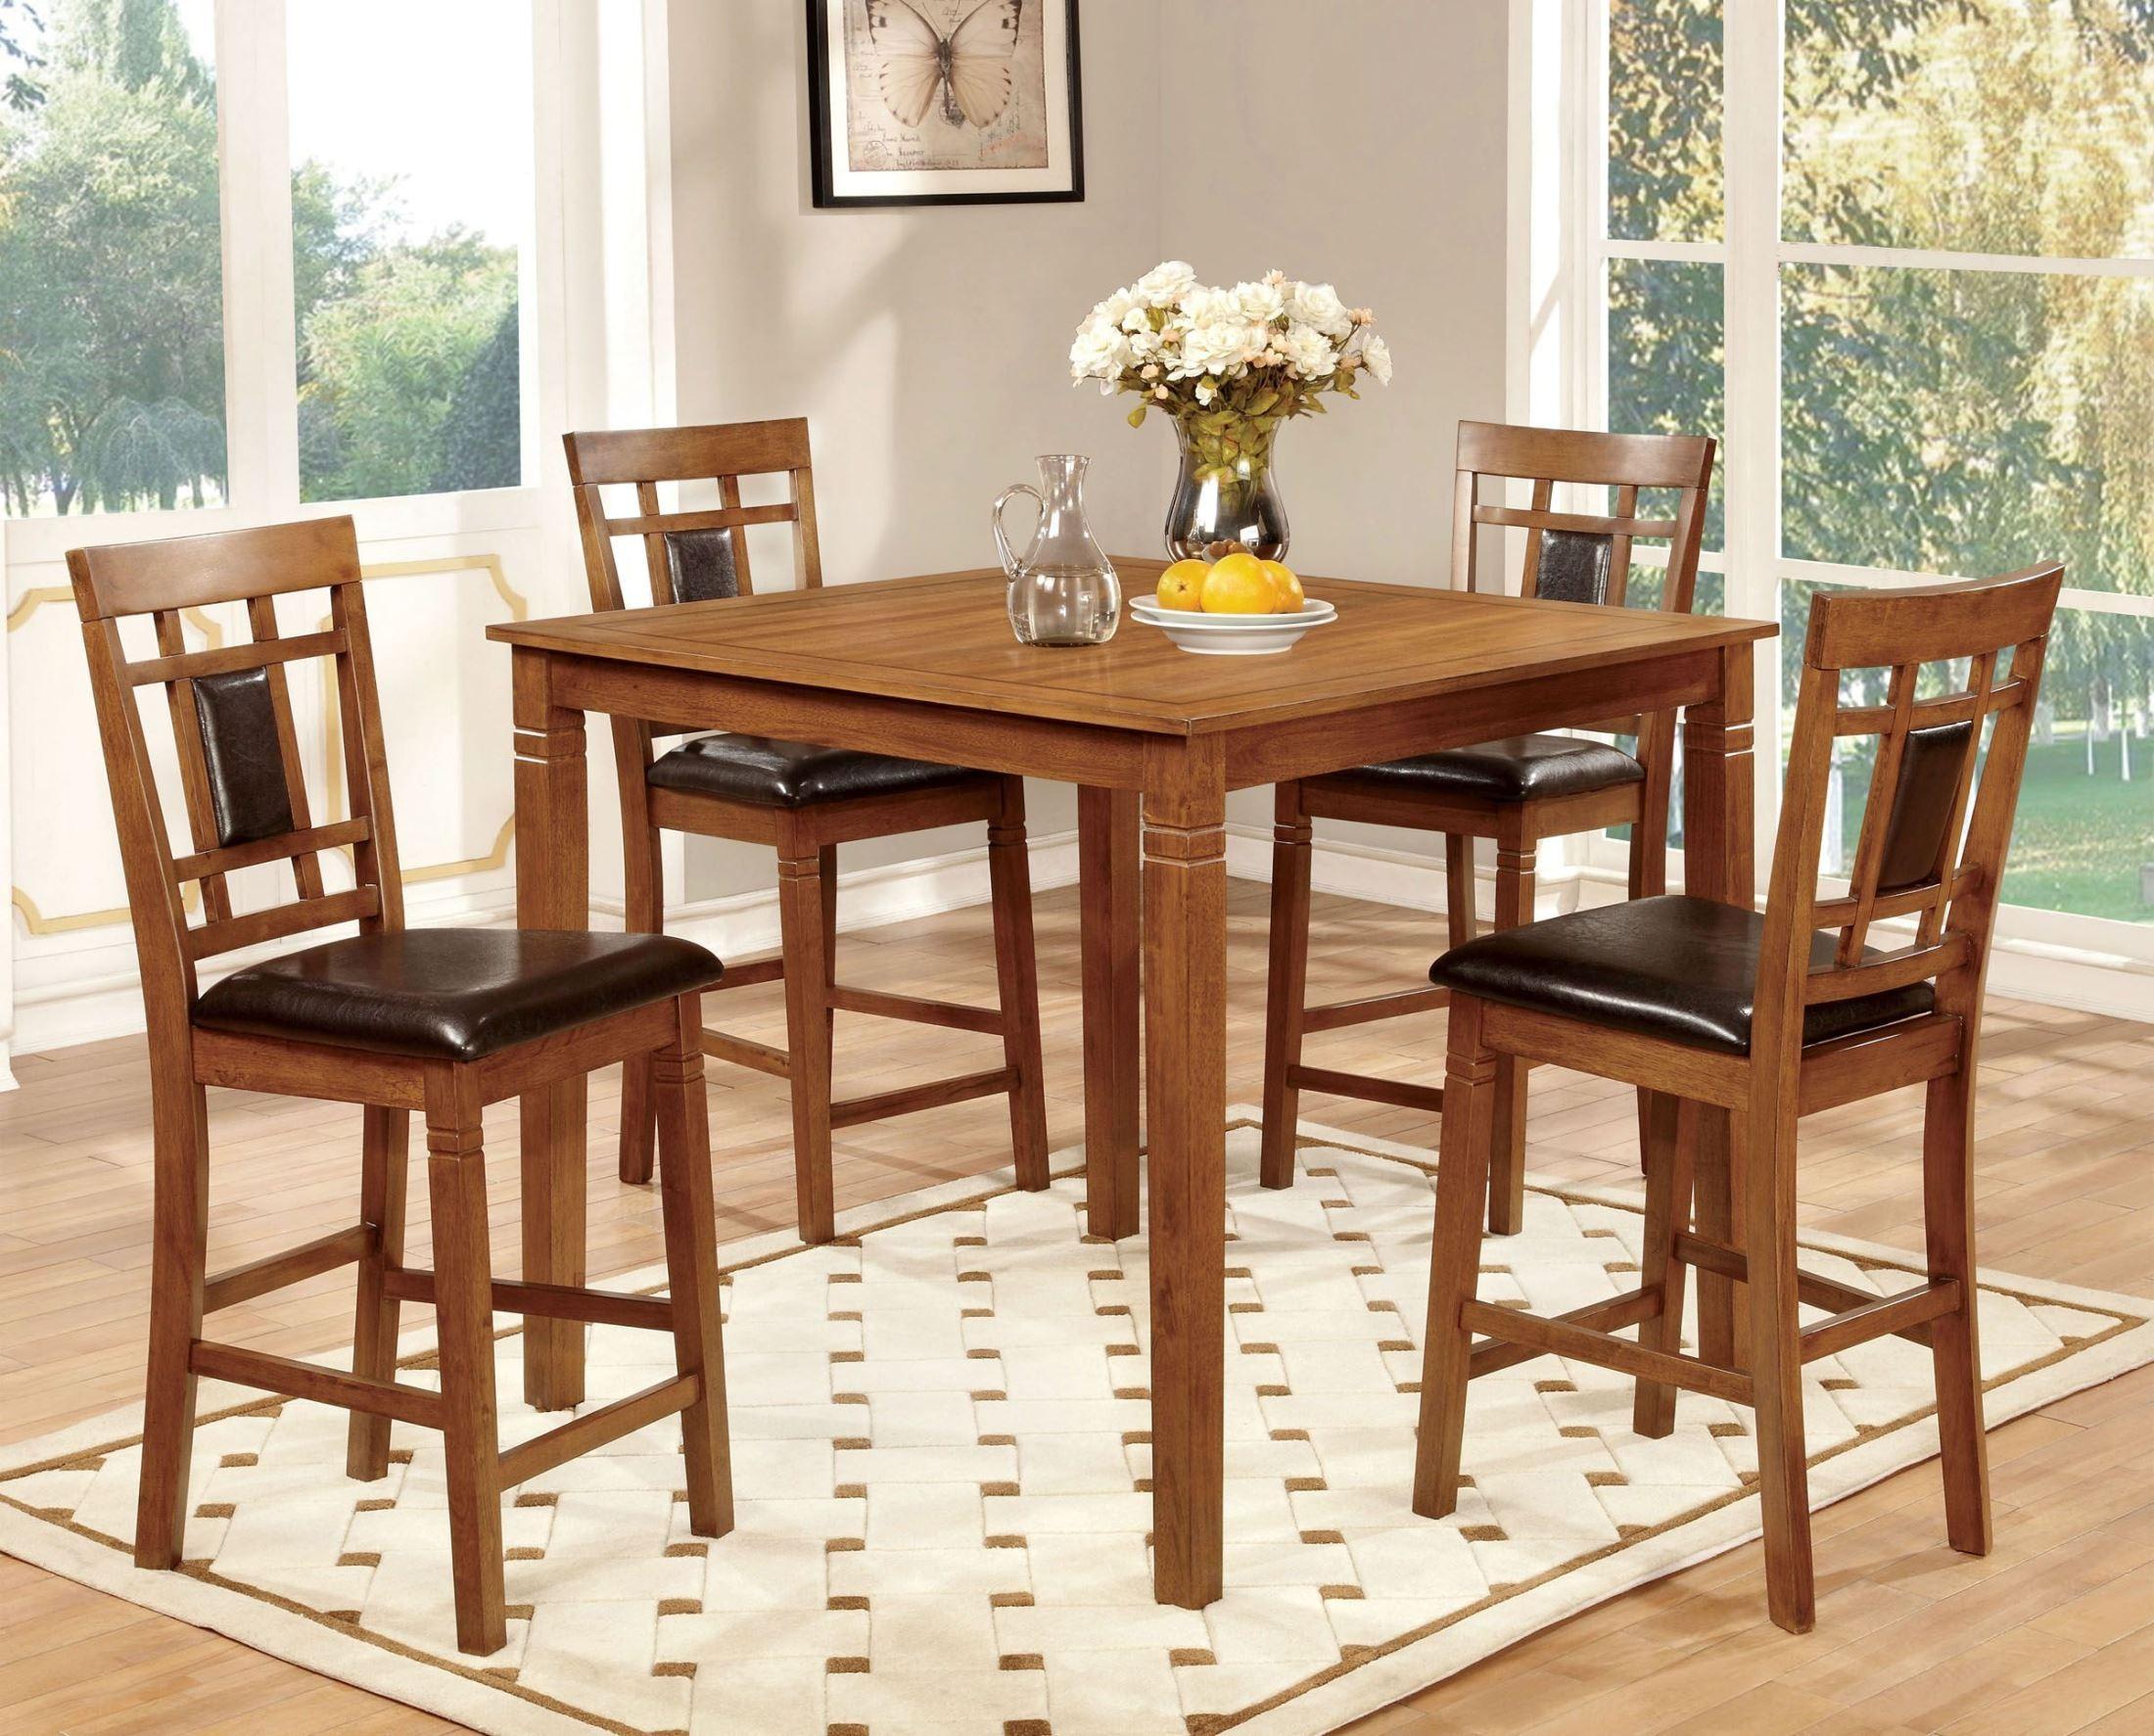 Dining Table Height Cm Freeman Ii Light Oak 5 Piece Counter Height Table Set From